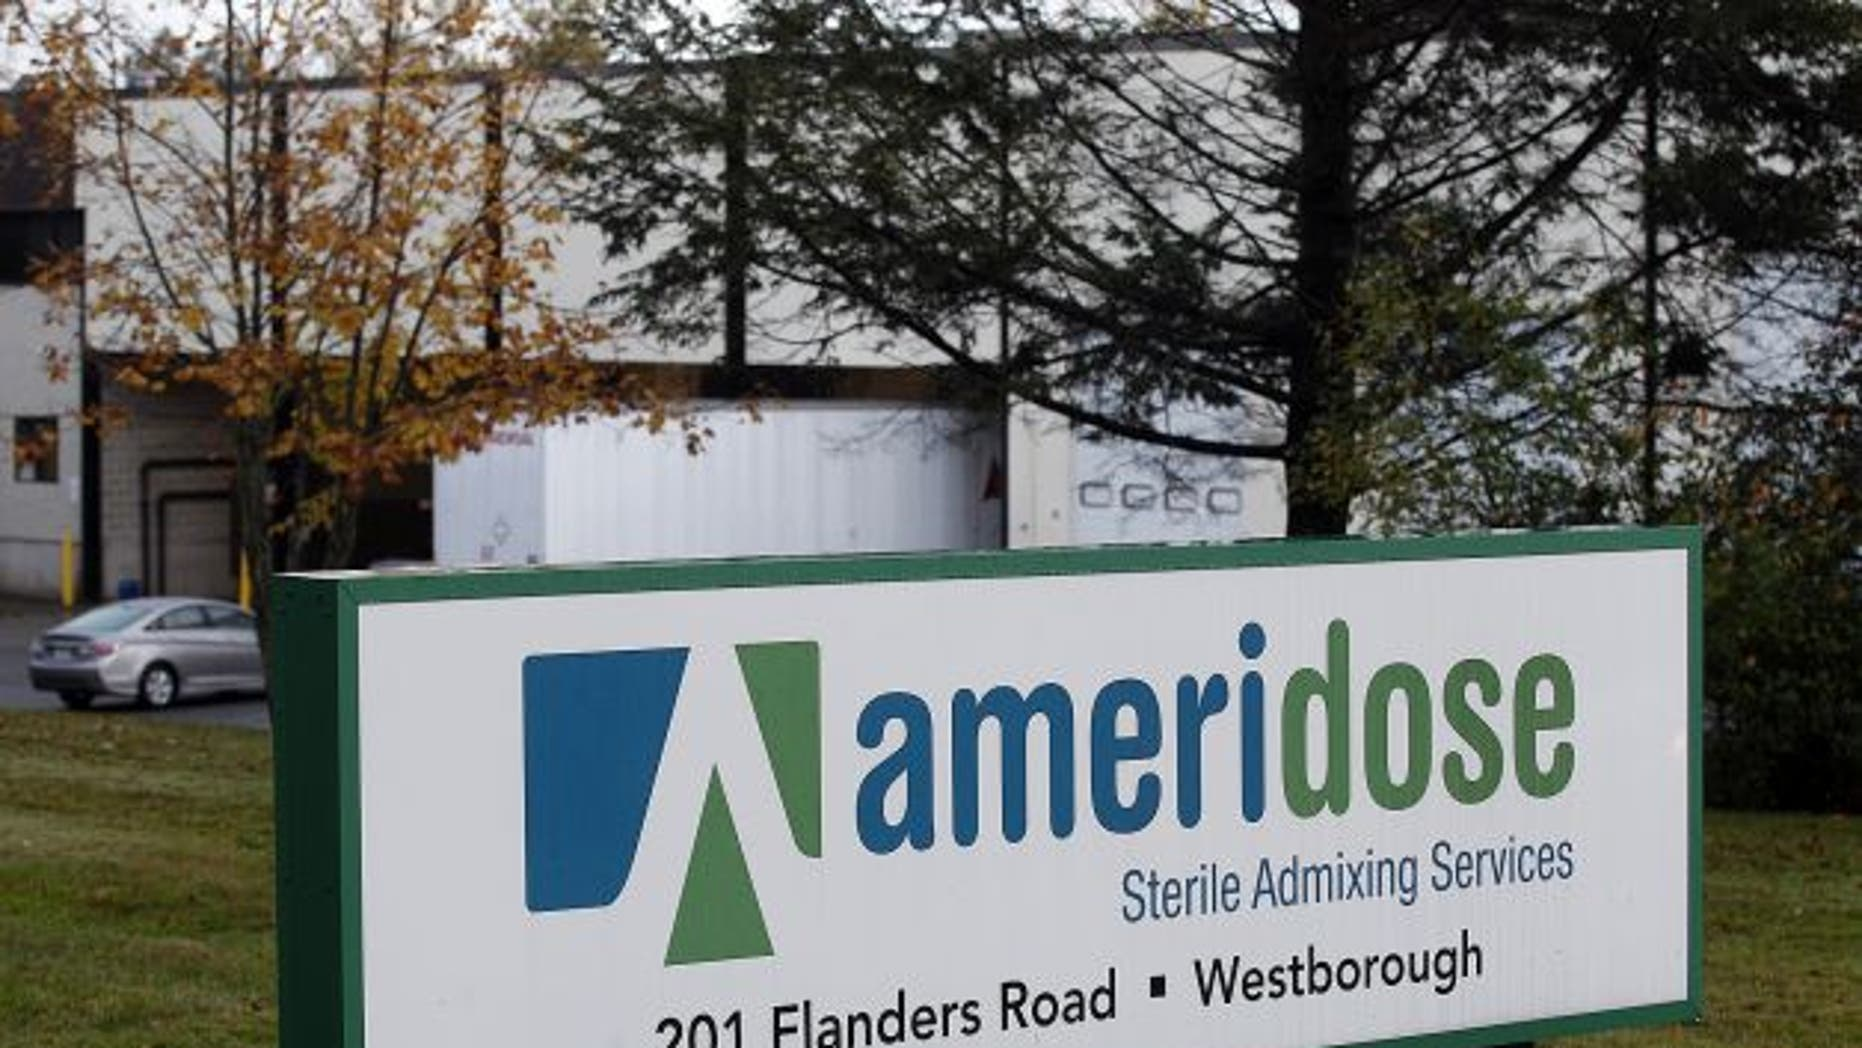 The exterior of Ameridose Sterile Admixing Services, a pharmacy connected to the New England Compounding Center linked to a deadly meningitis outbreak